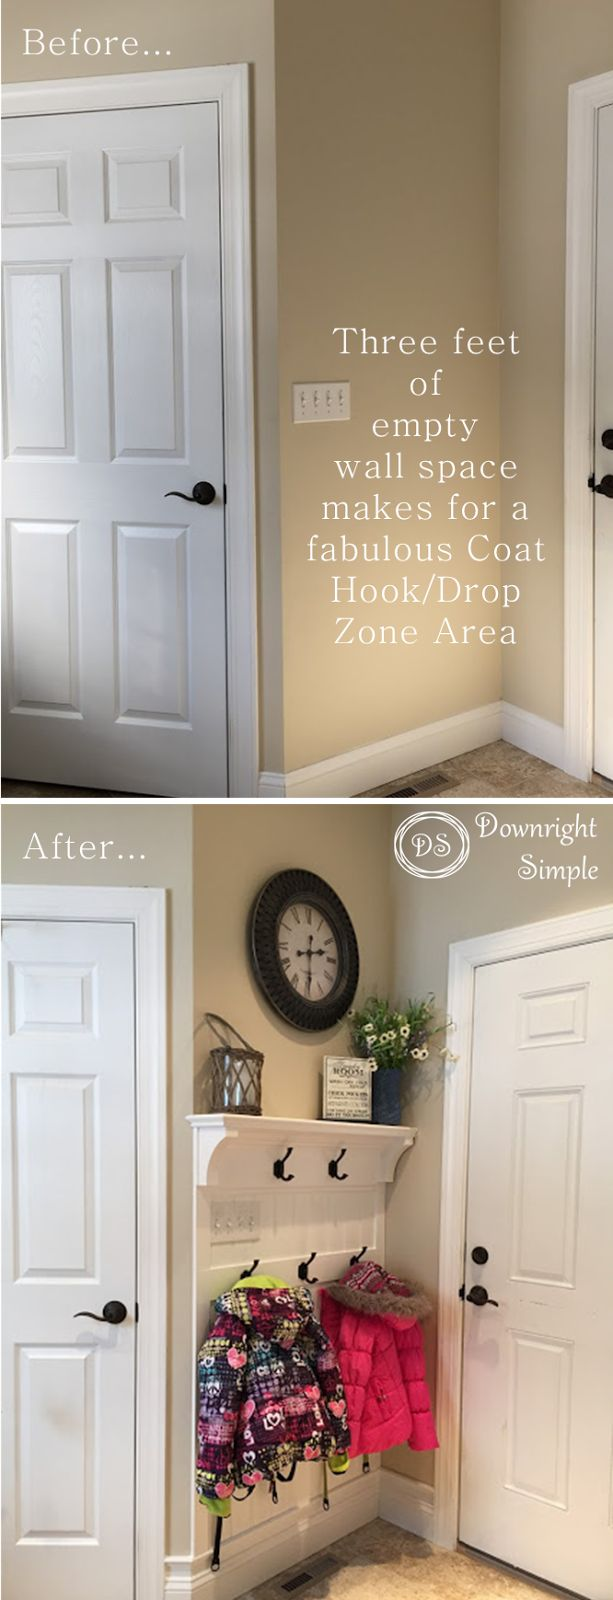 Downright Simple: Mudroom Entryway   Maximizing A Small Space | My DIY |  Pinterest | Mudroom, Small Spaces And Spaces Part 38